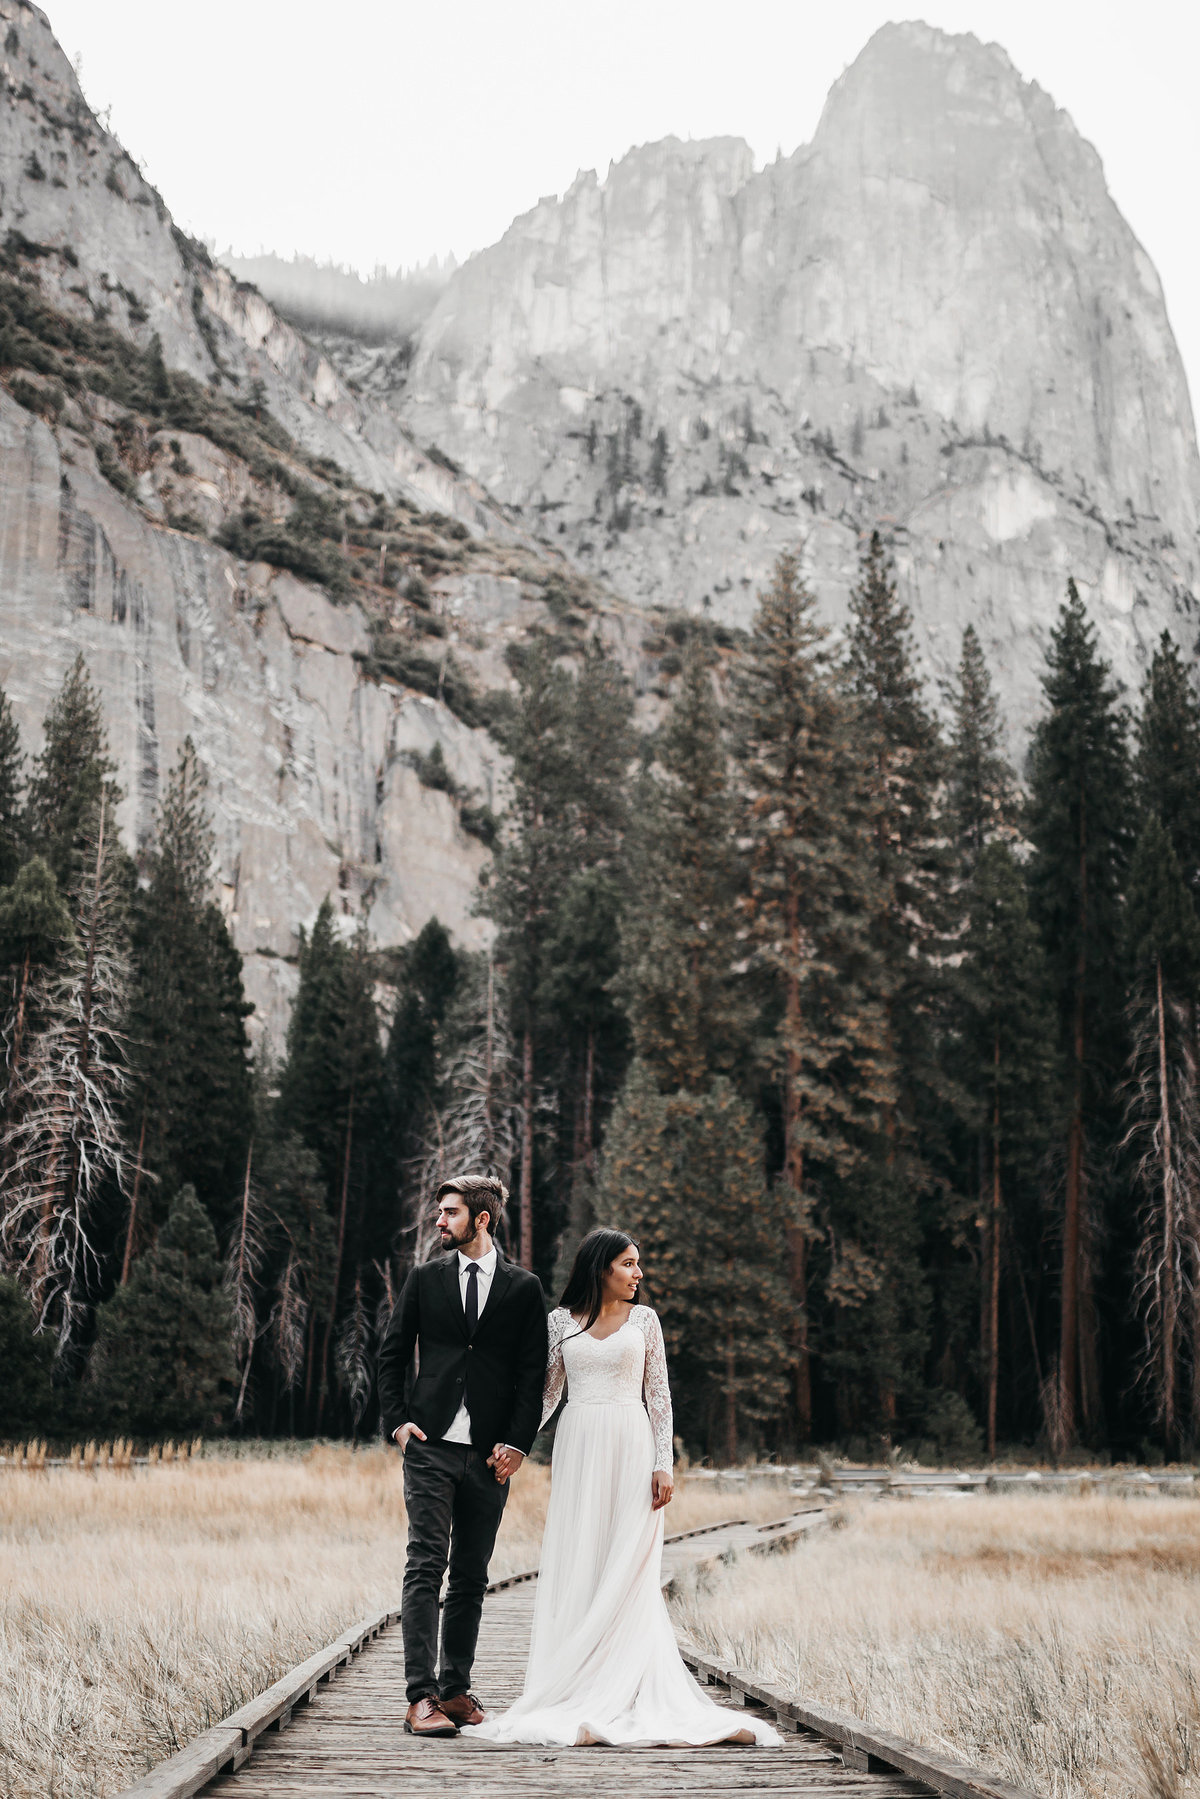 athena-and-camron-how-to-elope-in-yosemite-wedding-wooden-walkways-amy-kyle-2